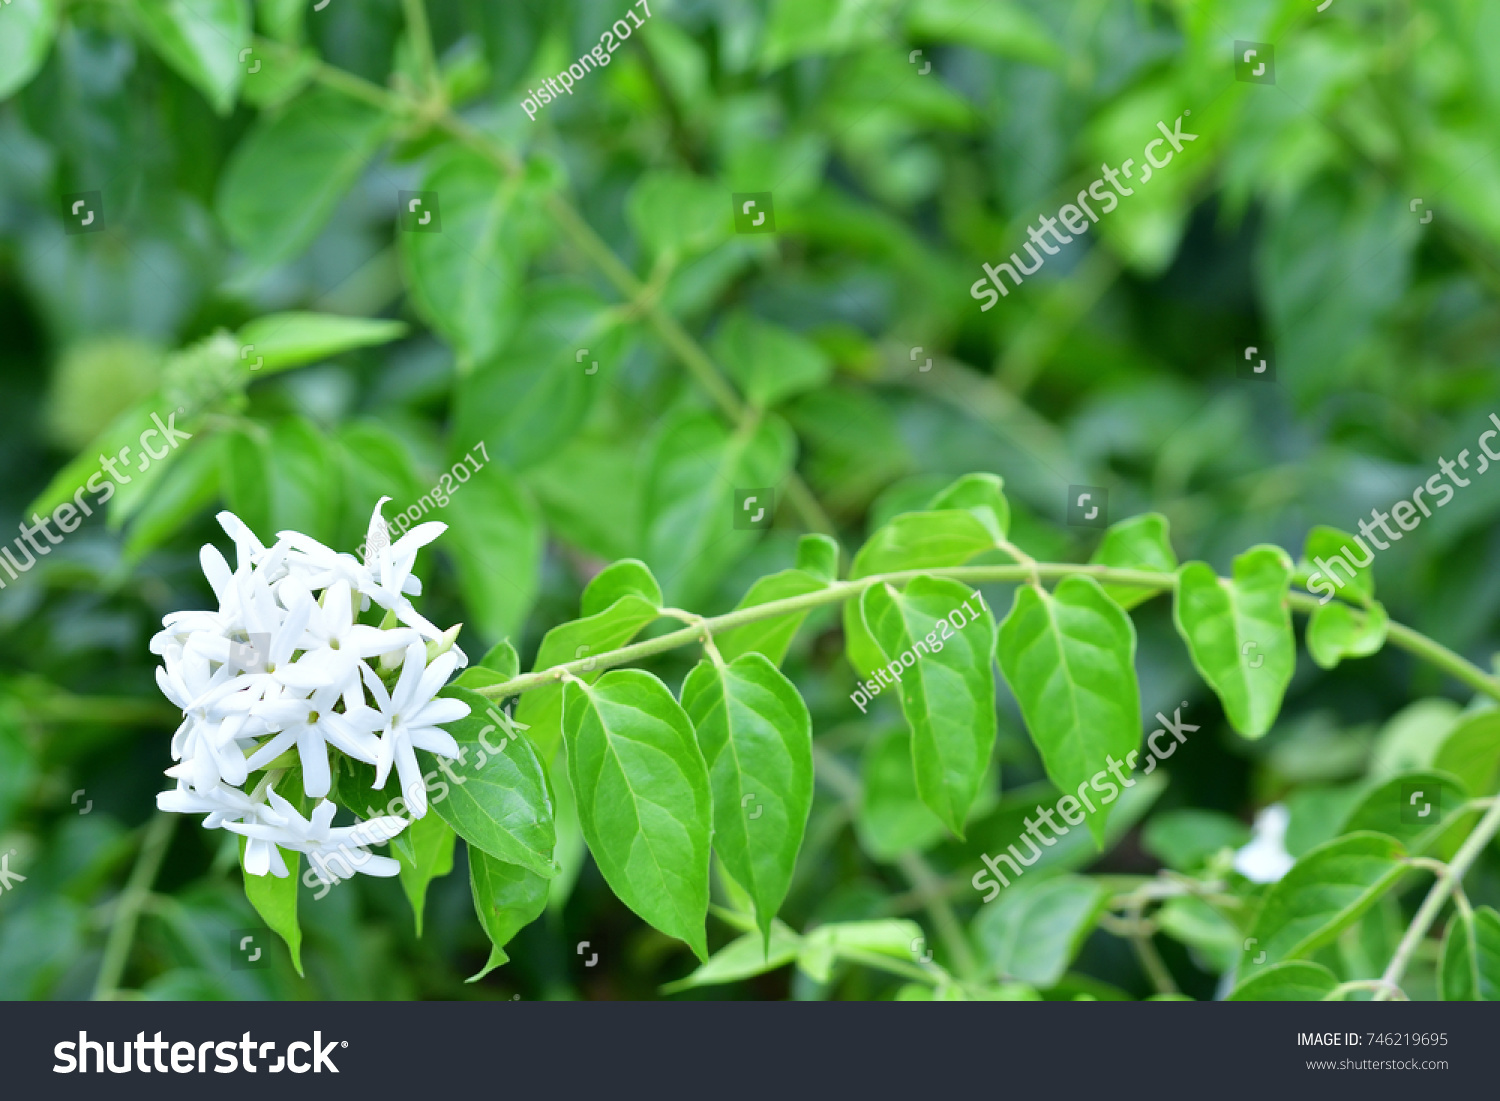 Jasminum multiflorum star jasmine angelhair jasmine stock photo jasminum multiflorum star jasmine angel hair jasmine showing small white flowers mightylinksfo